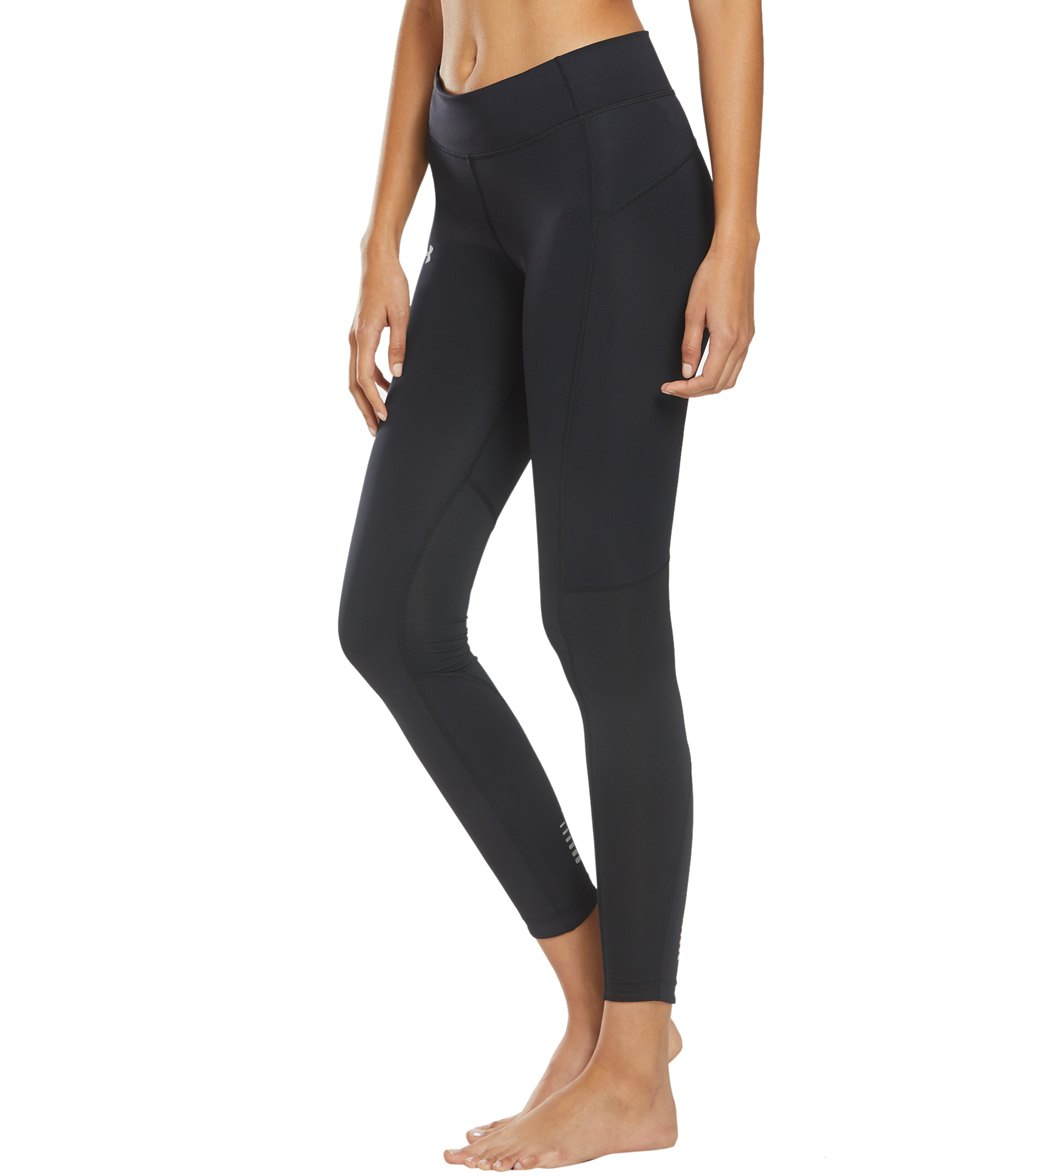 e47ea45cc3f679 Under Armour Women's UA Out Run the Storm Speedpocket tight at ...